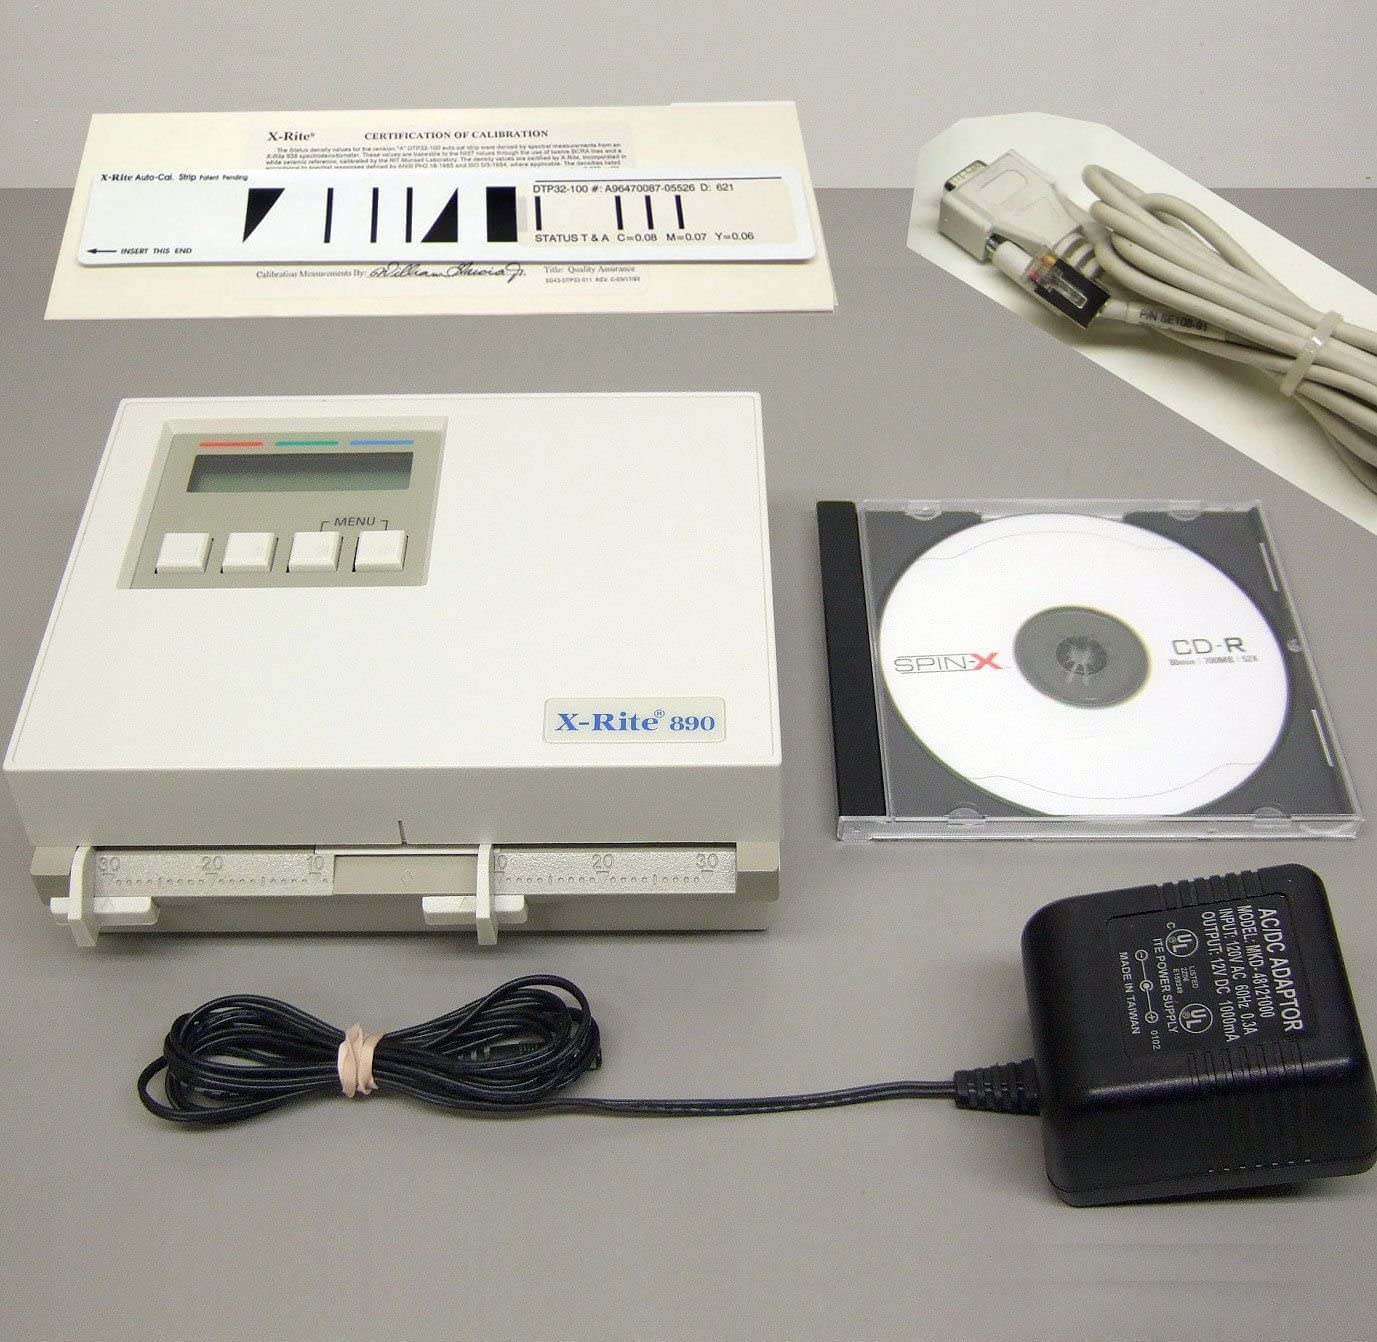 X-Rite 890 Color Photographic Densitometer Power supply /& manual Excellent Cond.